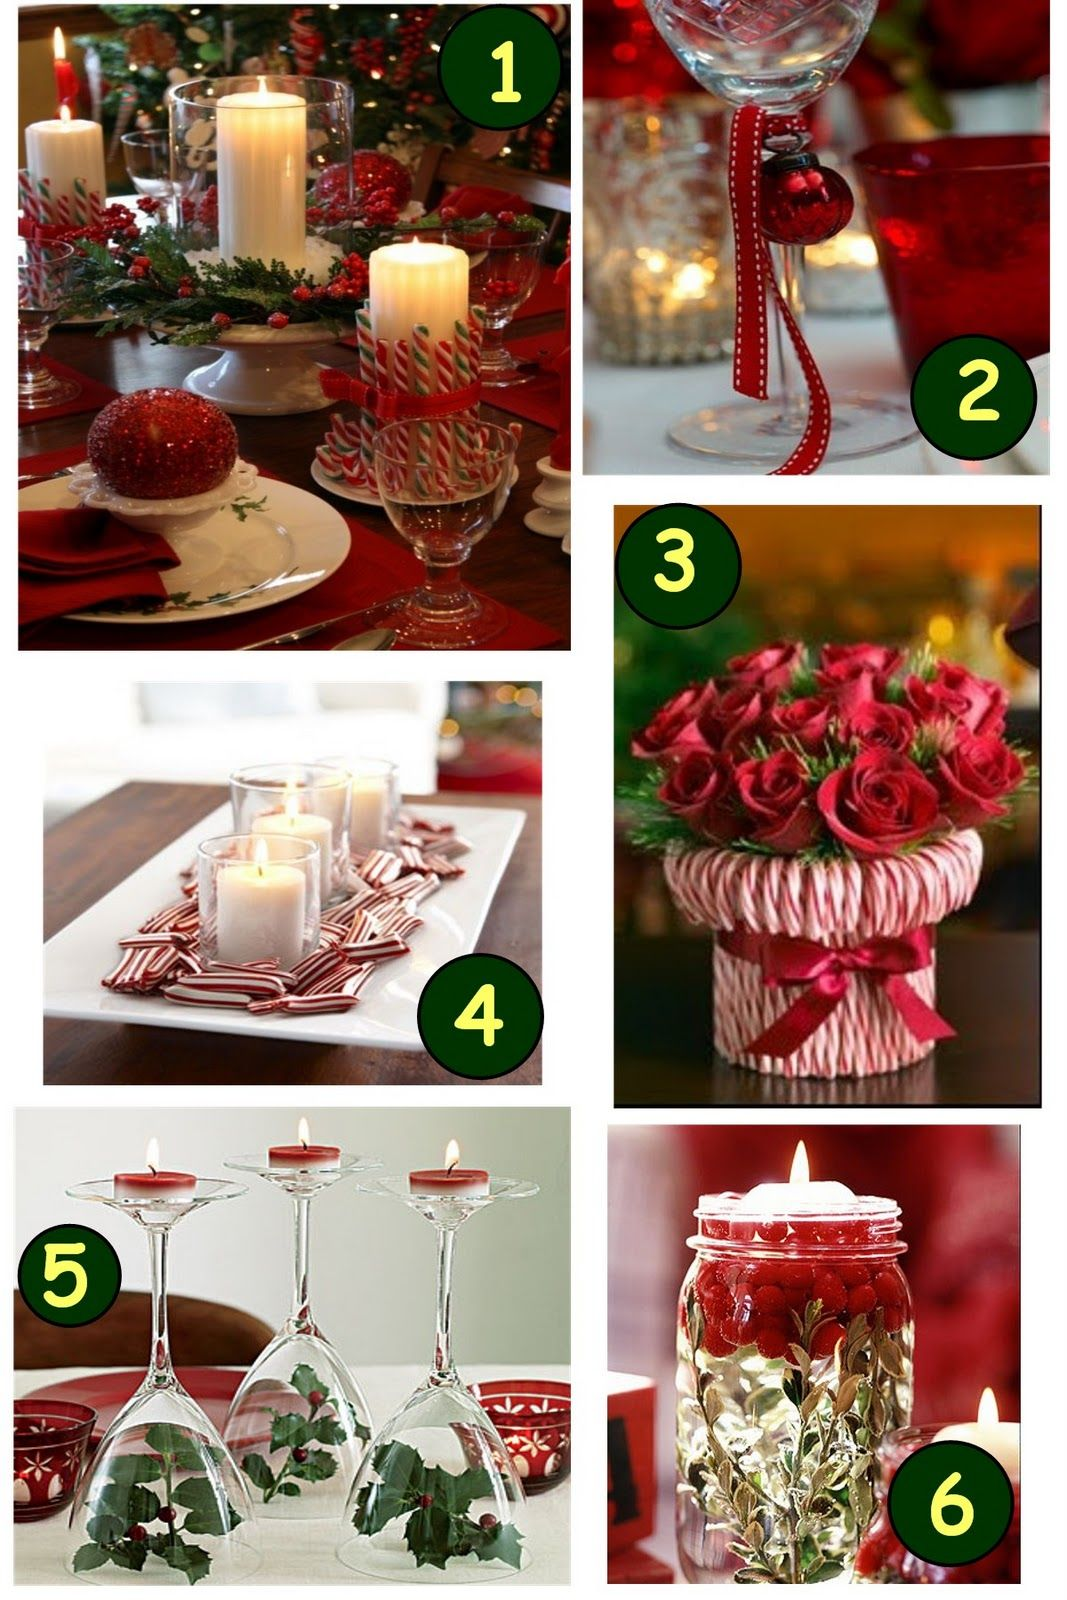 Table decoration for party - Christmas Party Table Decorations Are Some Great Christmas Decor Ideas For Your